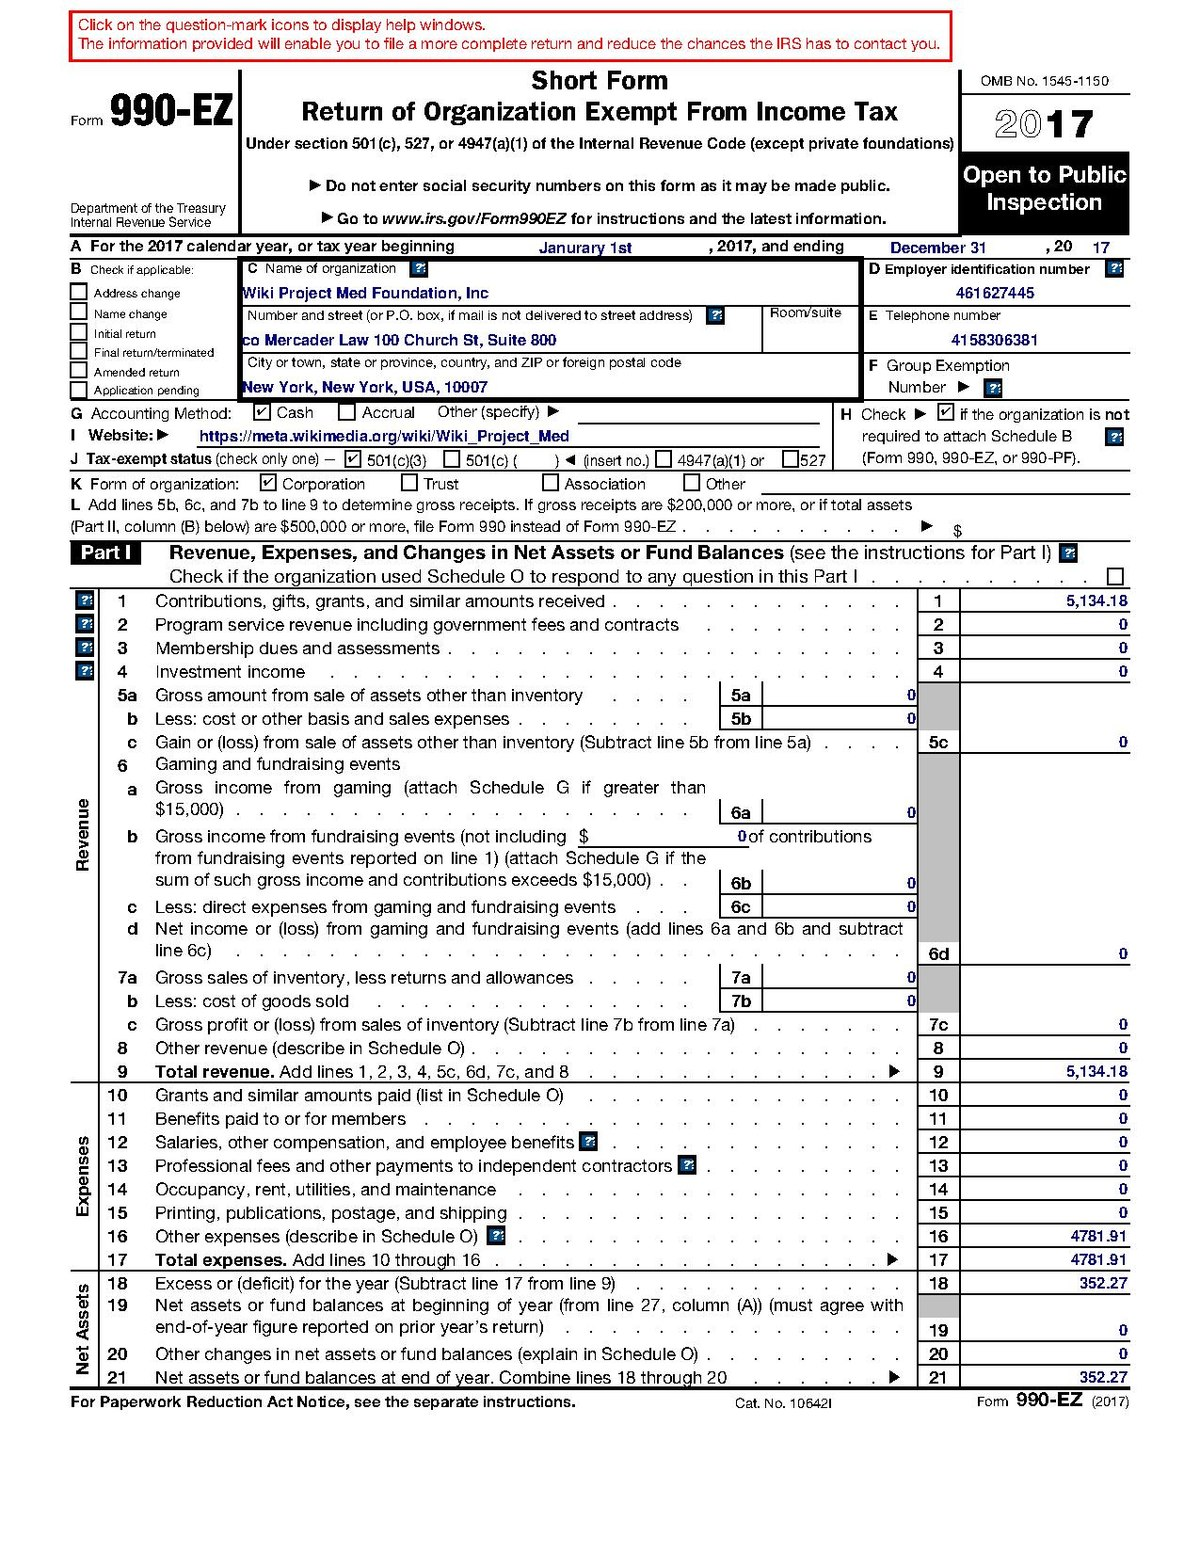 Form 990 Or 990 Ez Instructions